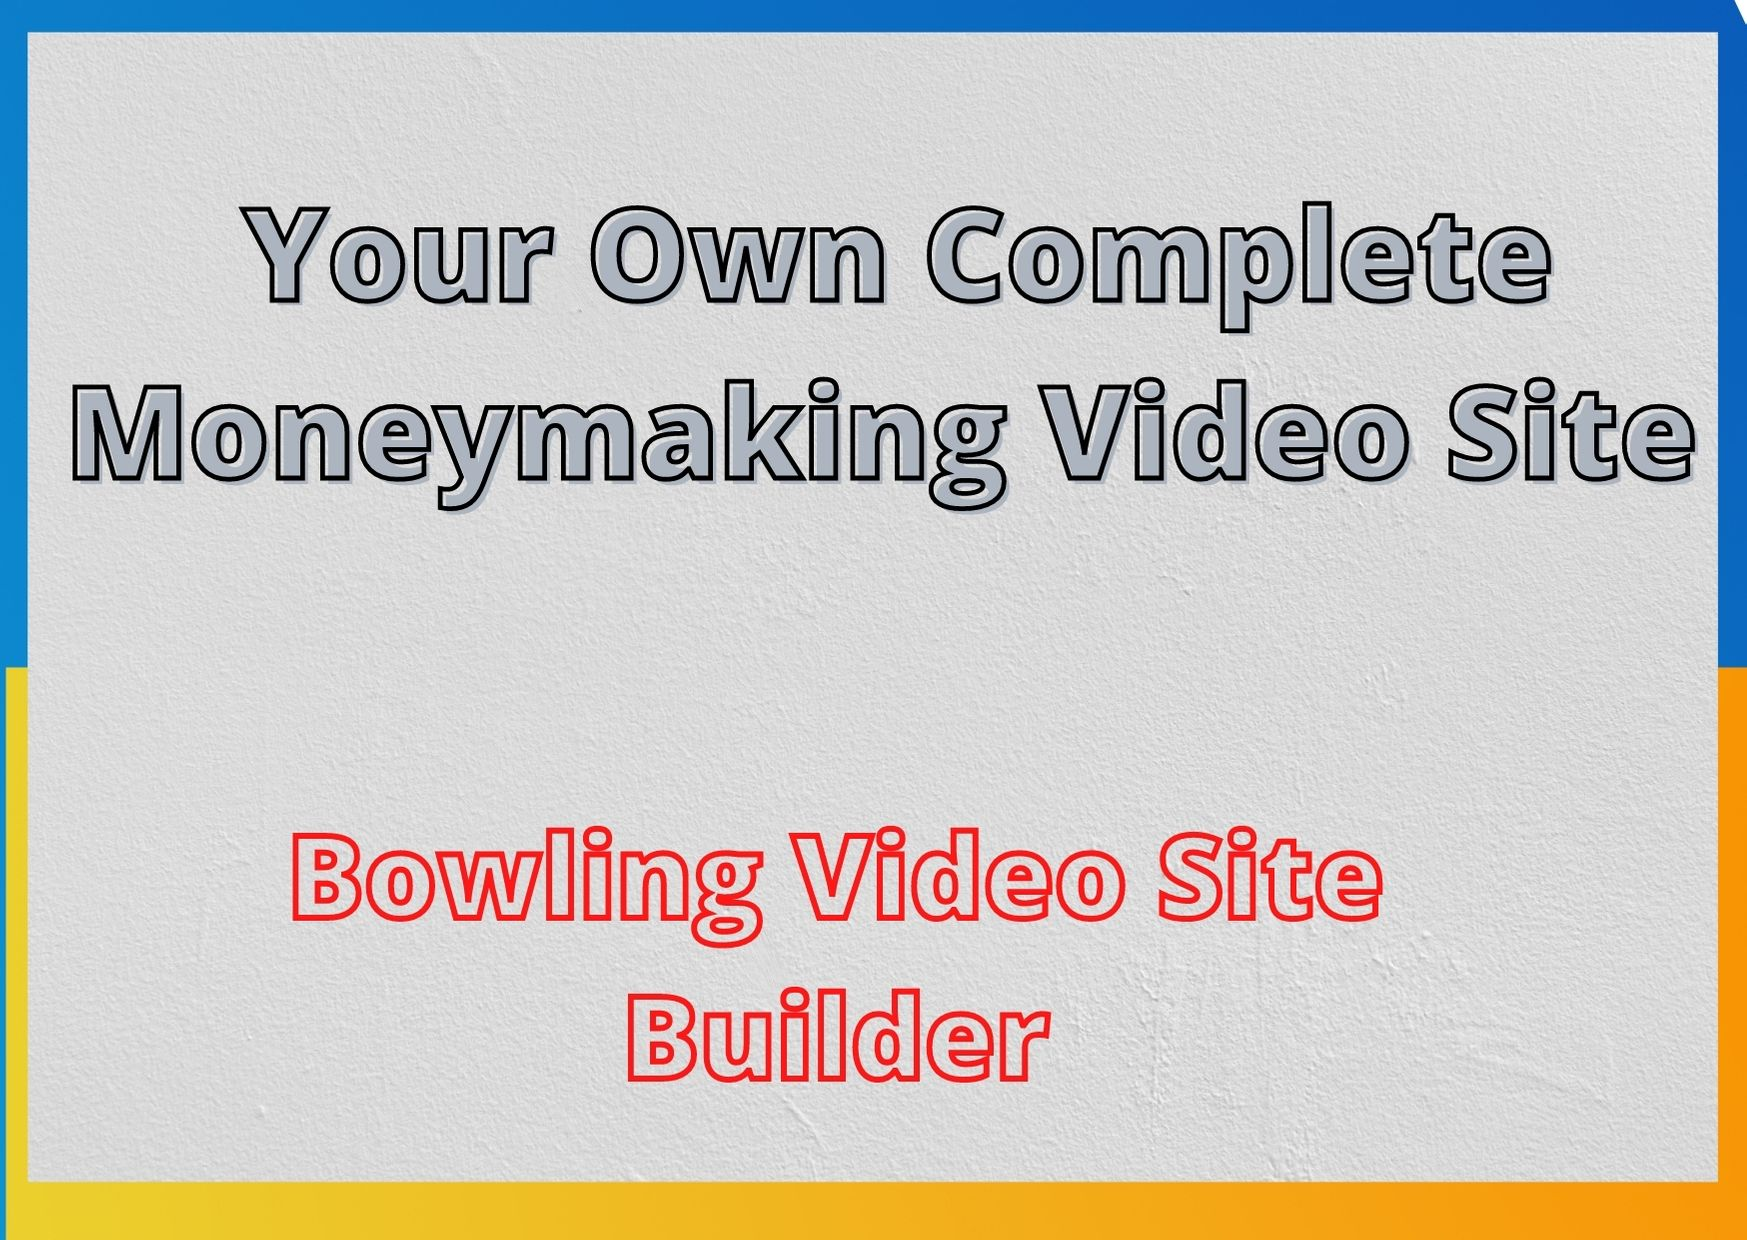 Create Your Own Complete Moneymaking Video Site software